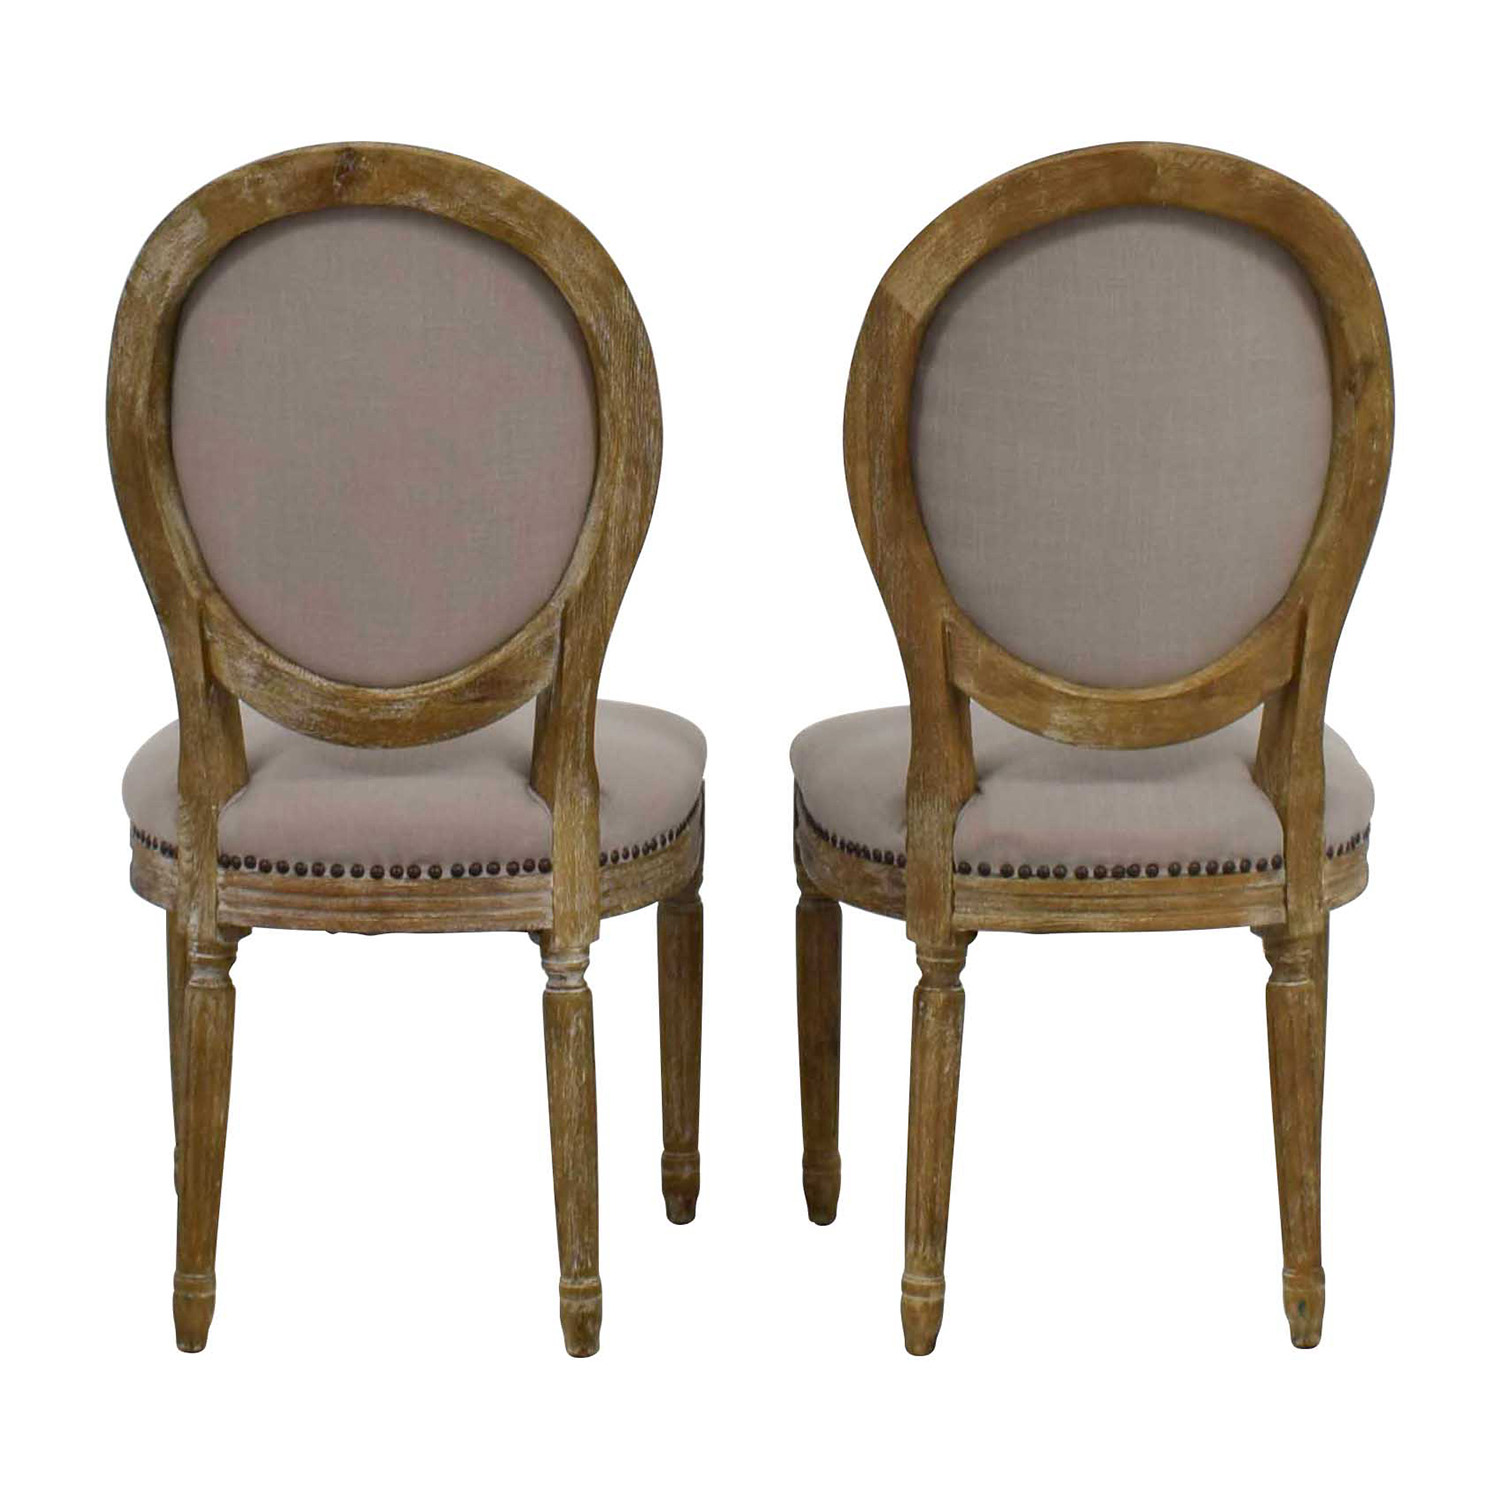 Baxton Studio Baxton Studio Clairette Traditional French Round Chair used